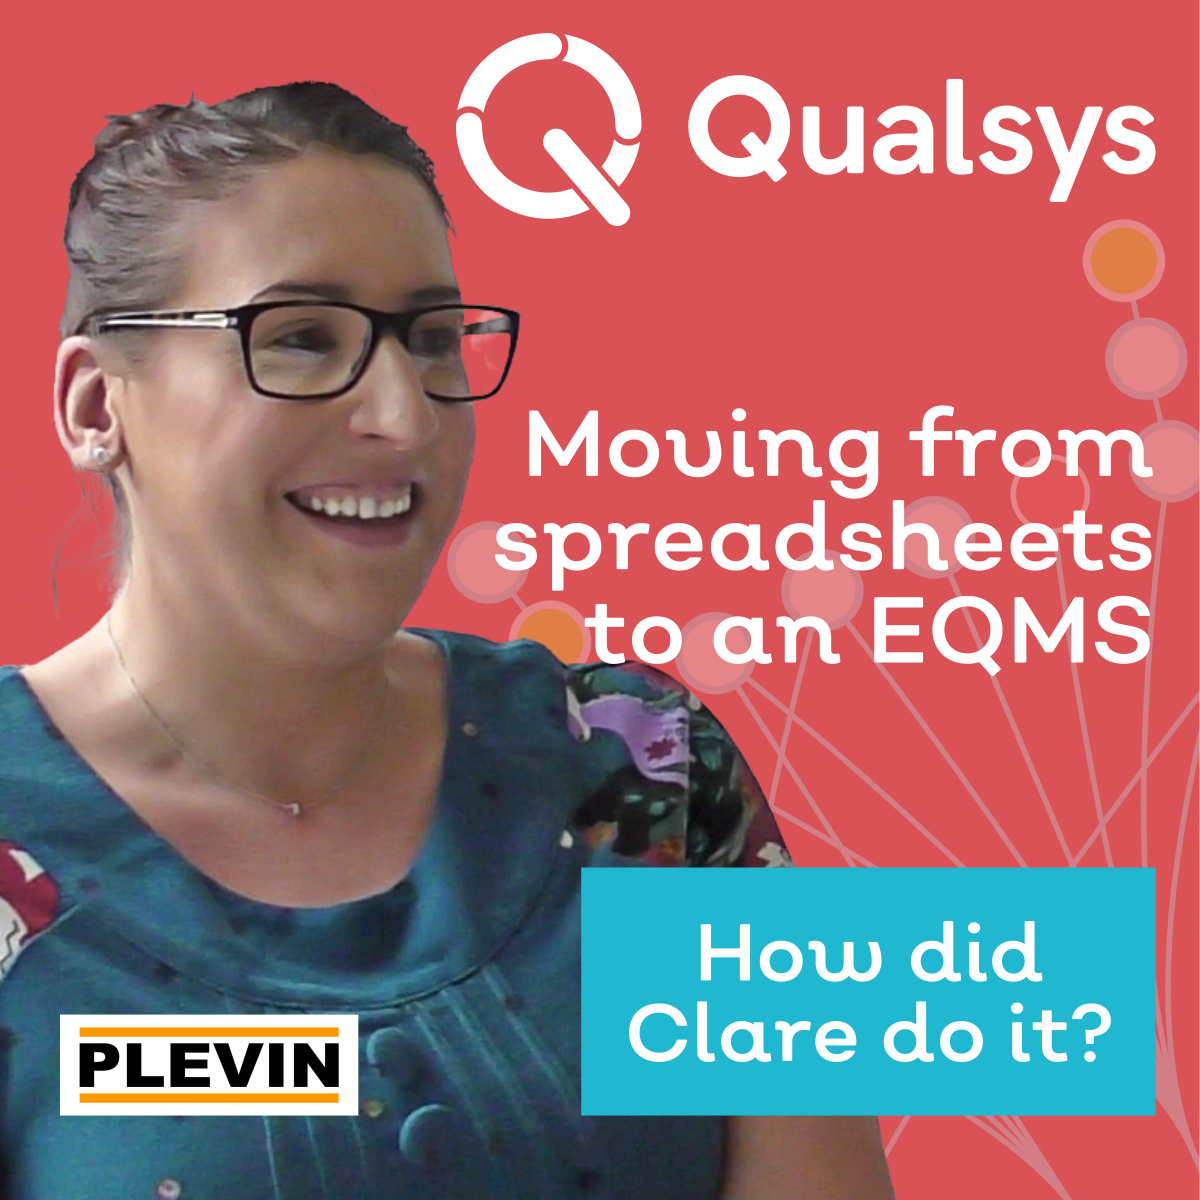 Migrating from spreadsheets to EQMS